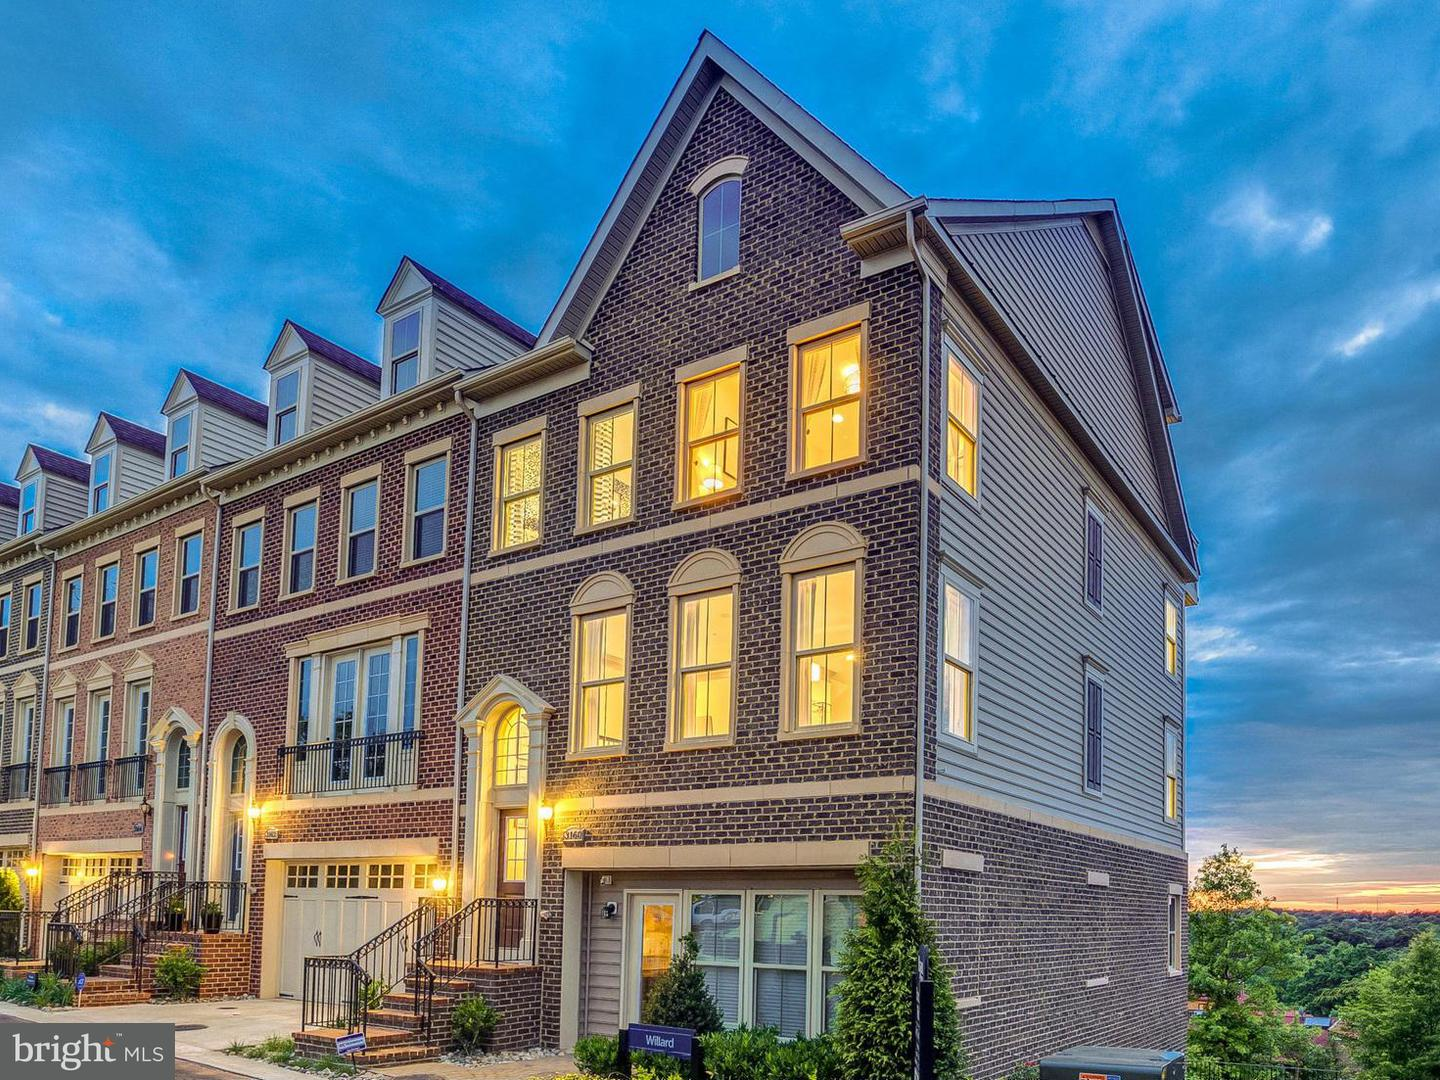 Single Family for Sale at 2628 Coleman Ln NE Washington, District Of Columbia 20018 United States